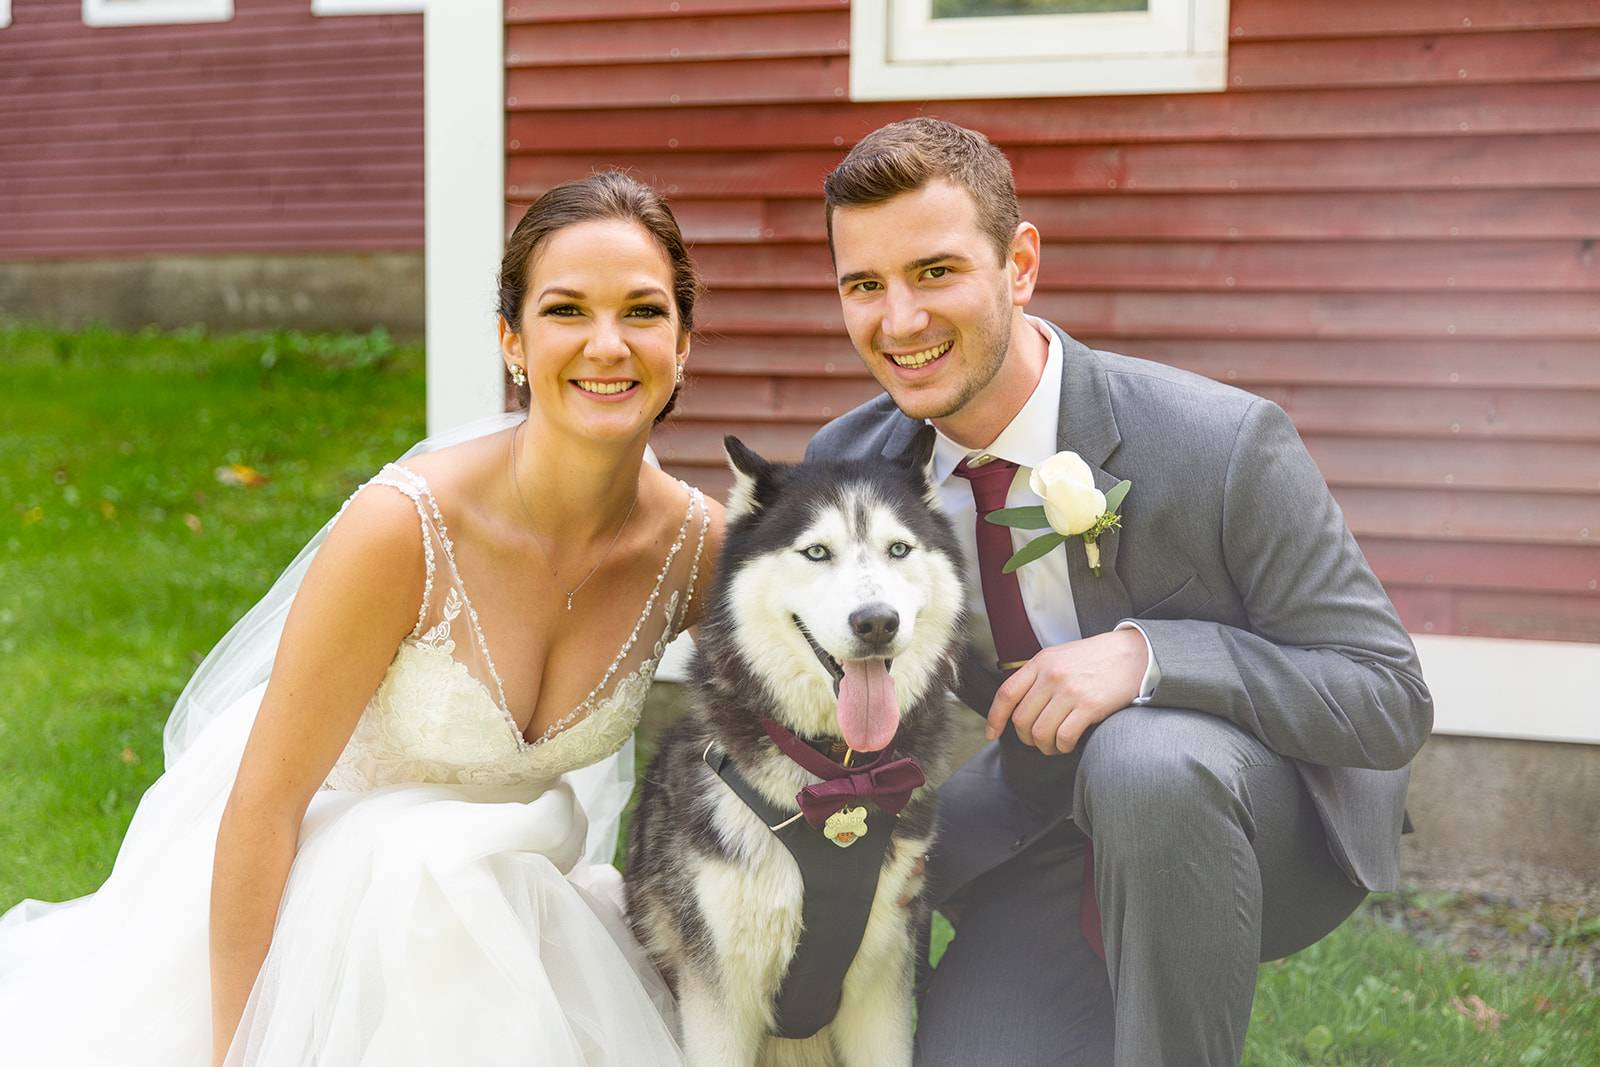 Bride and groom portrait with husky dog wearing bow tie on wedding day